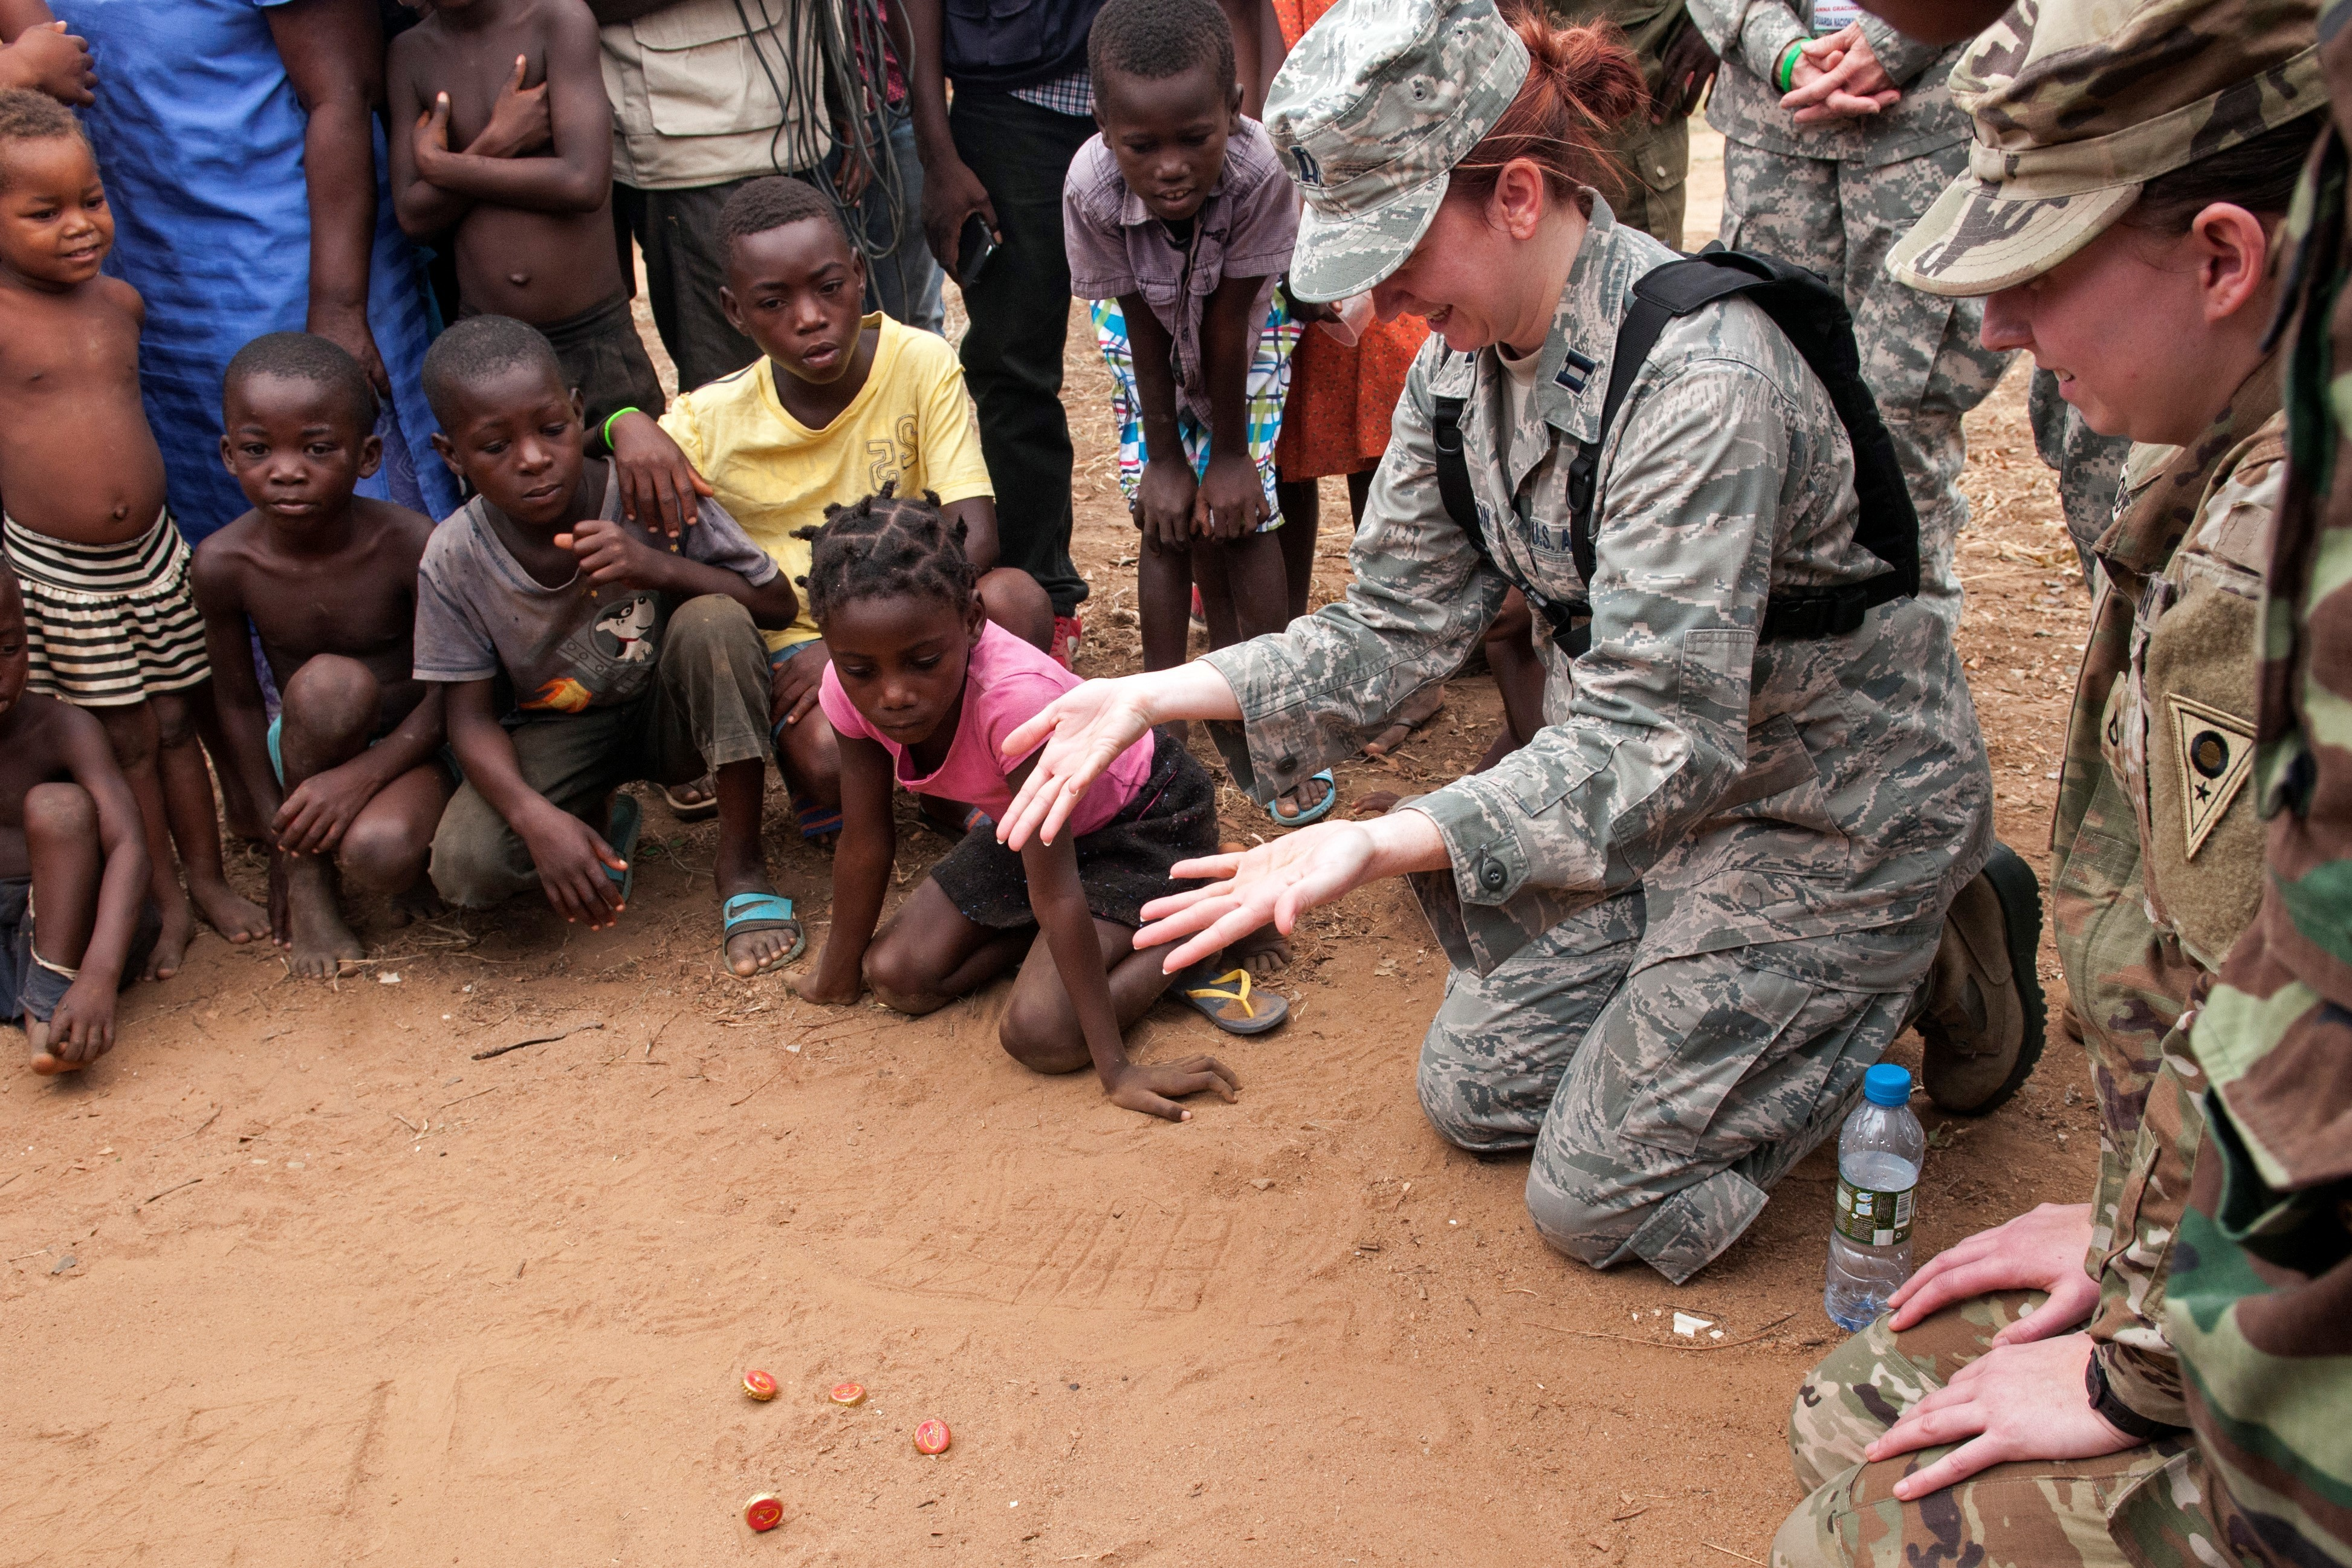 Capt. Sarah Woodson, a nurse with the Ohio Air National Guard, plays a game with the local children in the village of Vale do Paraiso during the PAMBALA medical exercise Dec. 9, 2017, in Bengo, Angola. PAMBALA, the first-ever trilateral combined medical engagement to take place in the Republic of Angola, is an agreement between the Angolan Armed Forces, Serbian Armed Forces and the Ohio National Guard to share best practices, strengthen medical treatment processes, establish new relationships and nurture established partnerships. (Ohio National Guard photo by Staff Sgt. Wendy Kuhn)